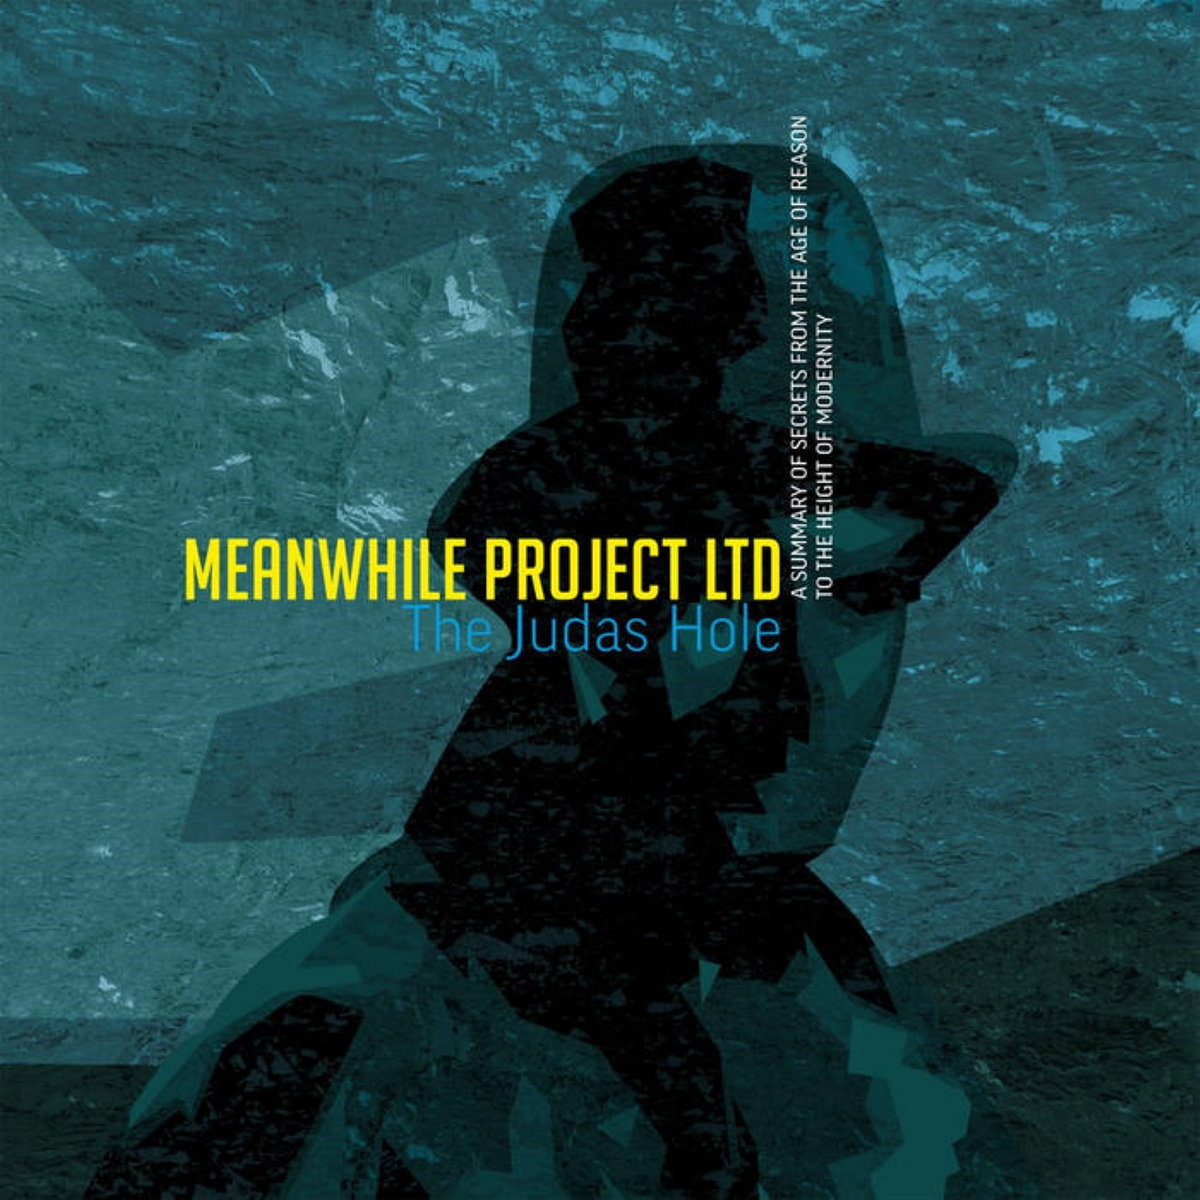 Meanwhile Project.ltd – The Judas hole